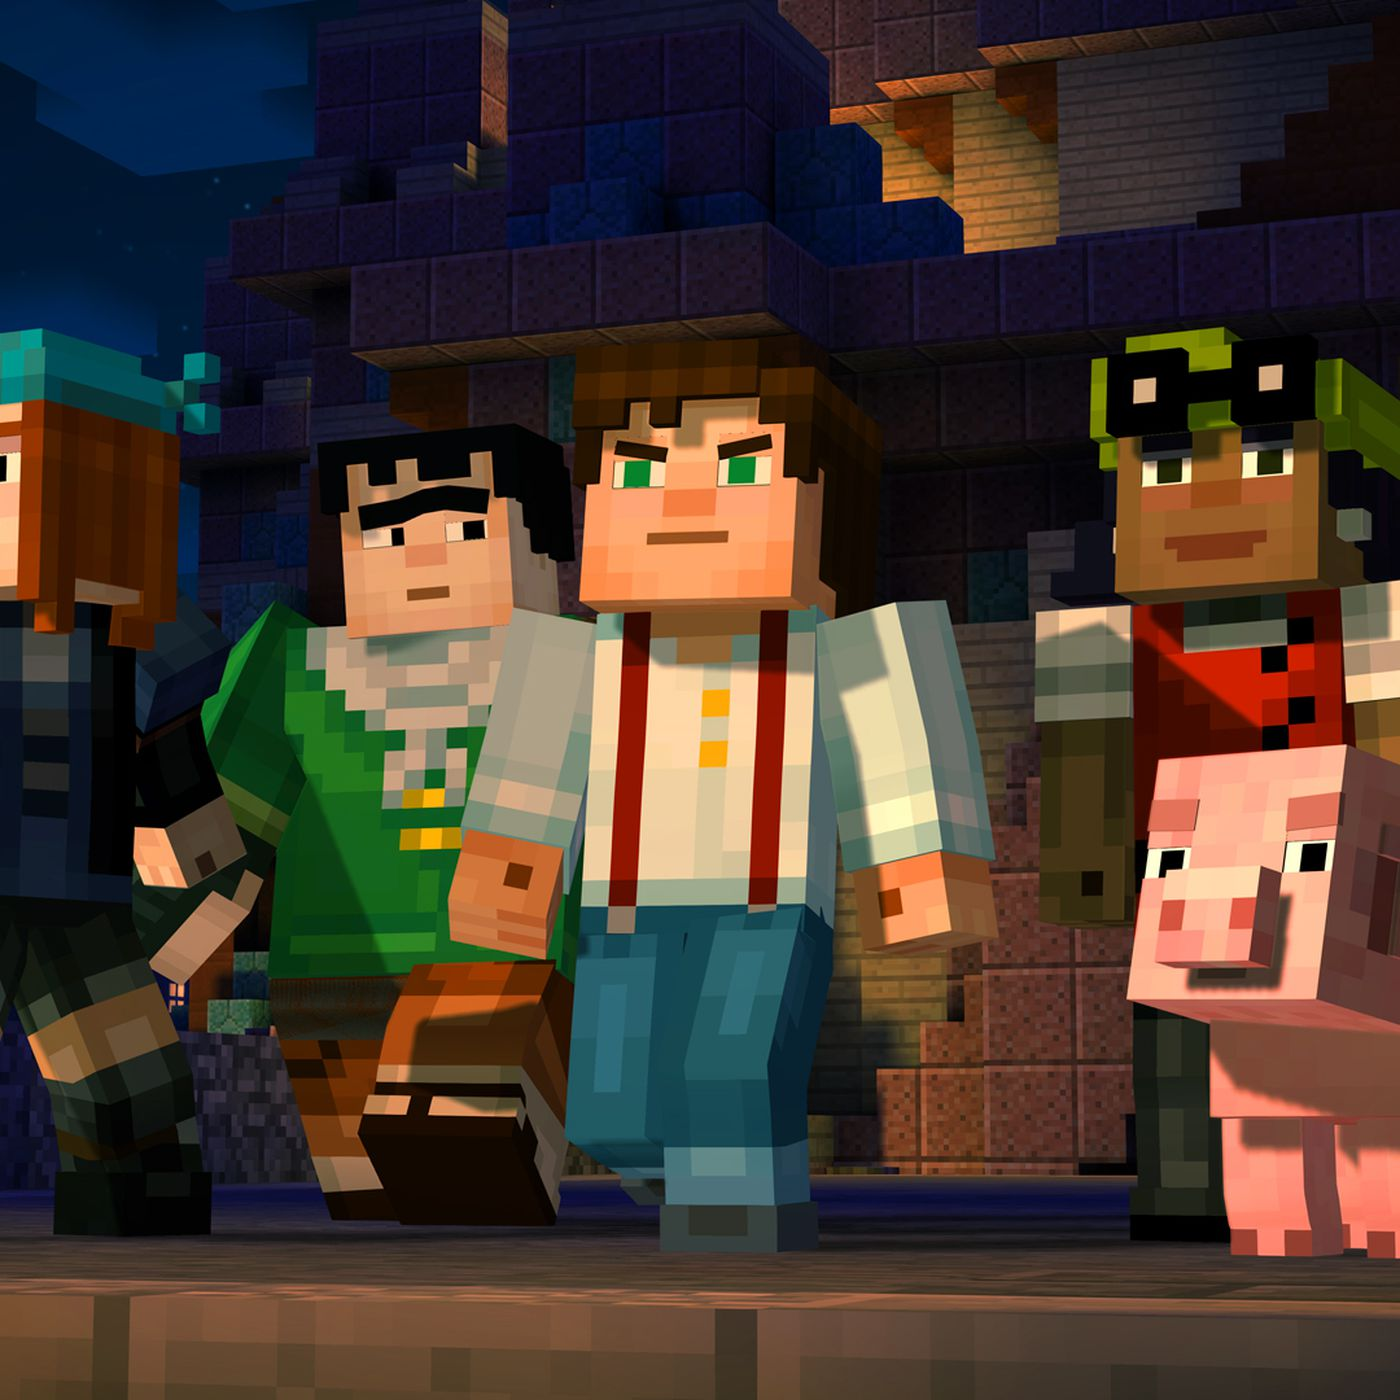 Minecraft: Story Mode is being pulled from stores on June